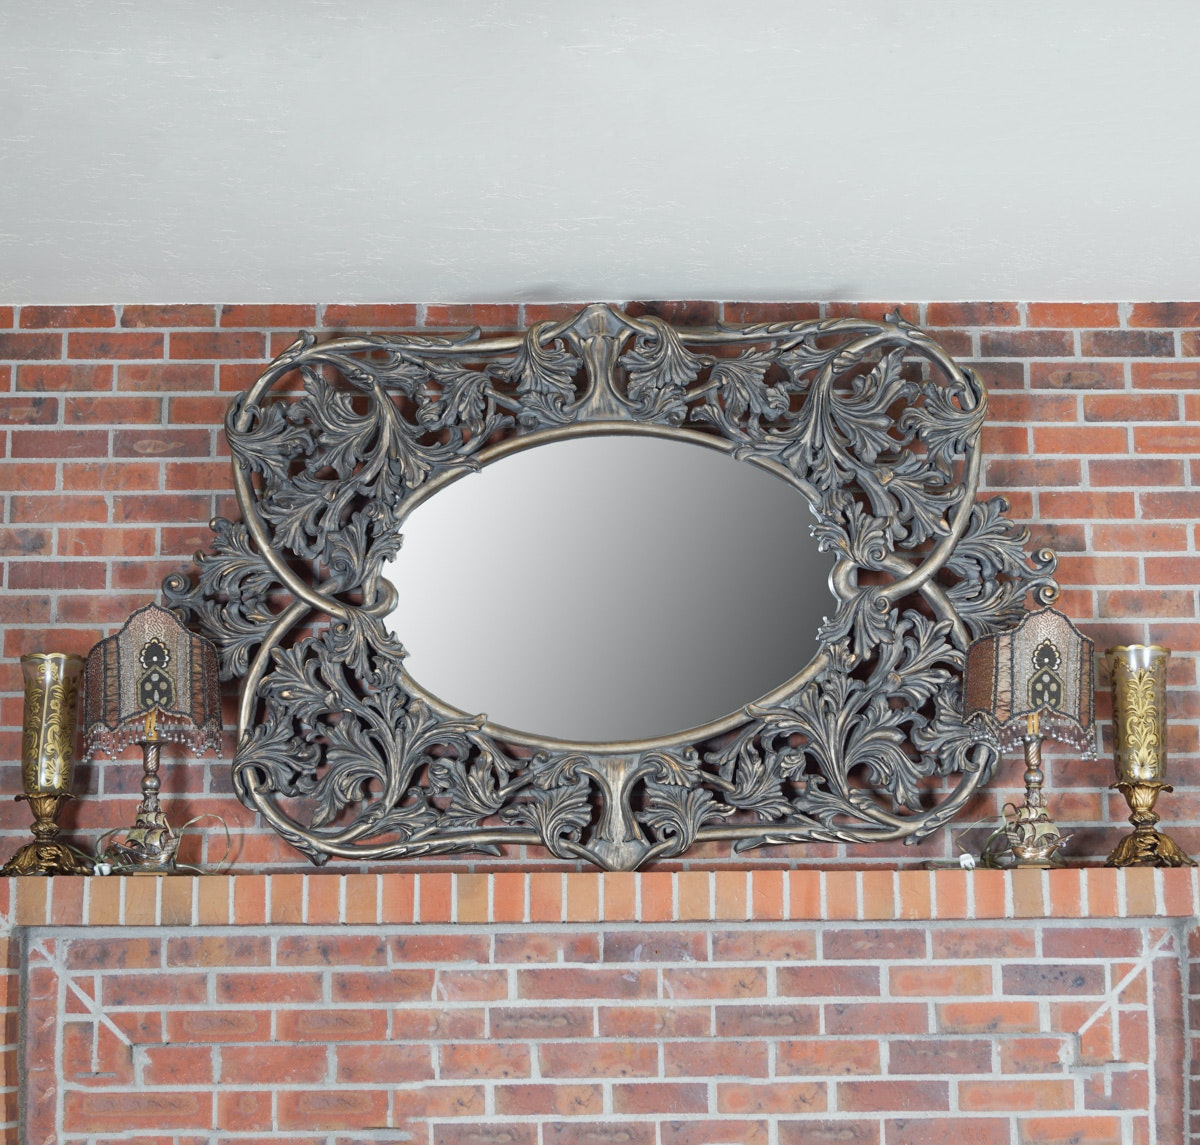 Ornate Wall Mirror and Grouping of Small Lamps